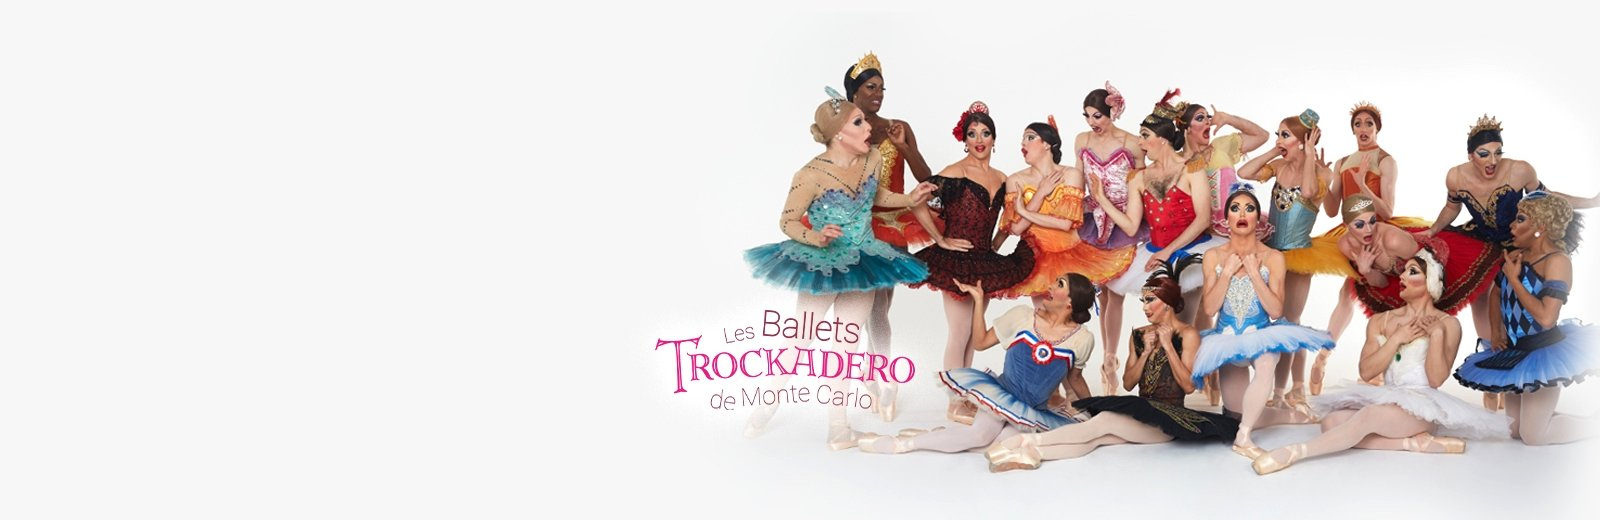 Cast of Les Ballets Trockadero de Monte Carlo in colorful ballet costumes posing with shocked expressions.